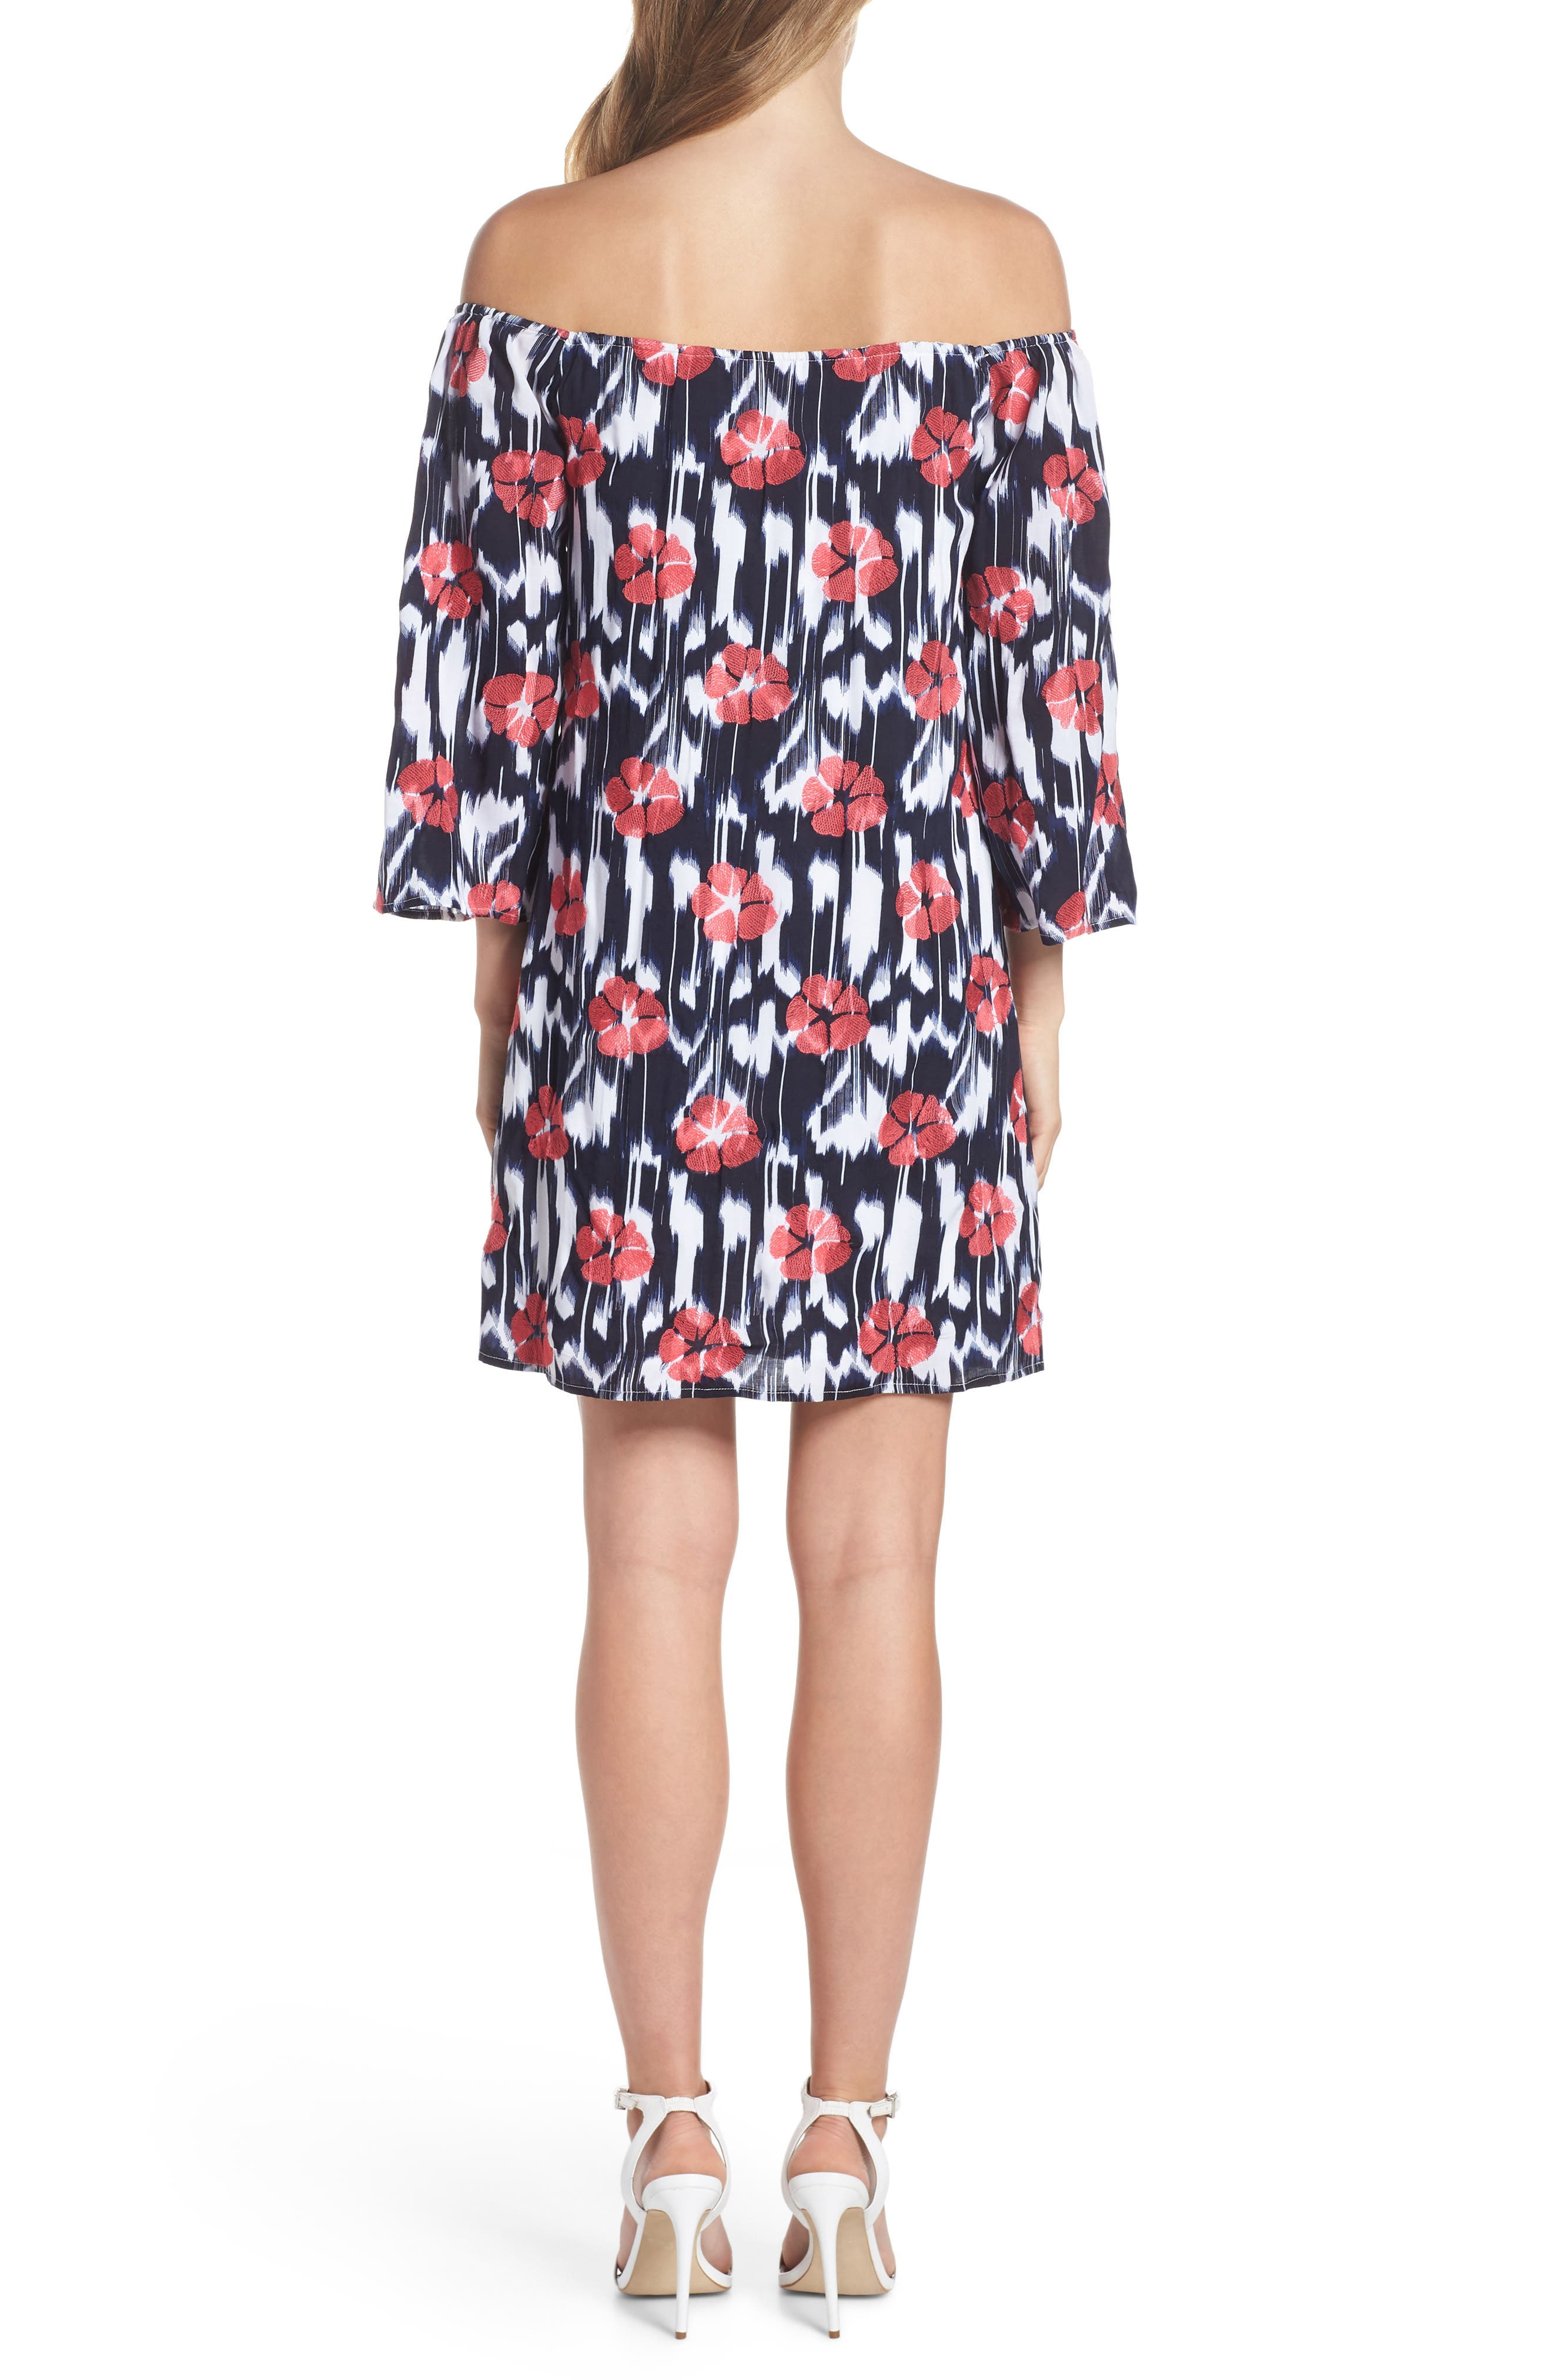 TRINA TRINA TURK,                             Kenwood Off the Shoulder Shift Dress,                             Alternate thumbnail 2, color,                             460